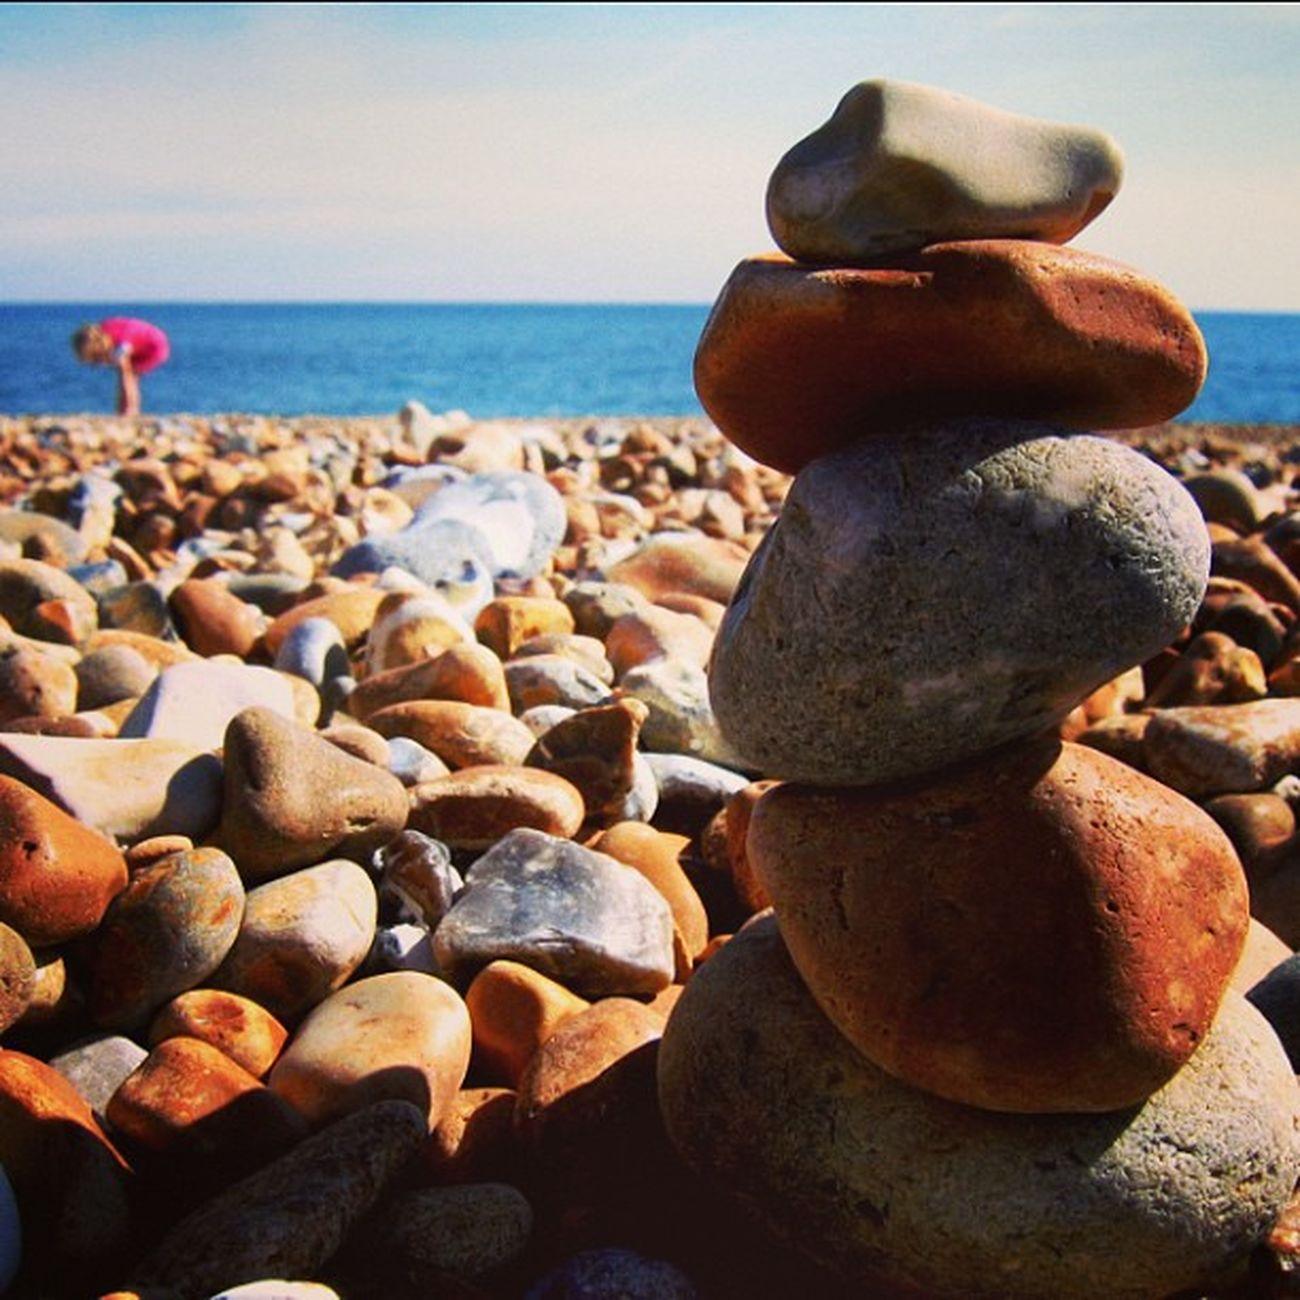 Beach Hasting Pebbles Rocks sea sun sunshine uk rockart balanced igadict igdaily instadaily canon a95 red